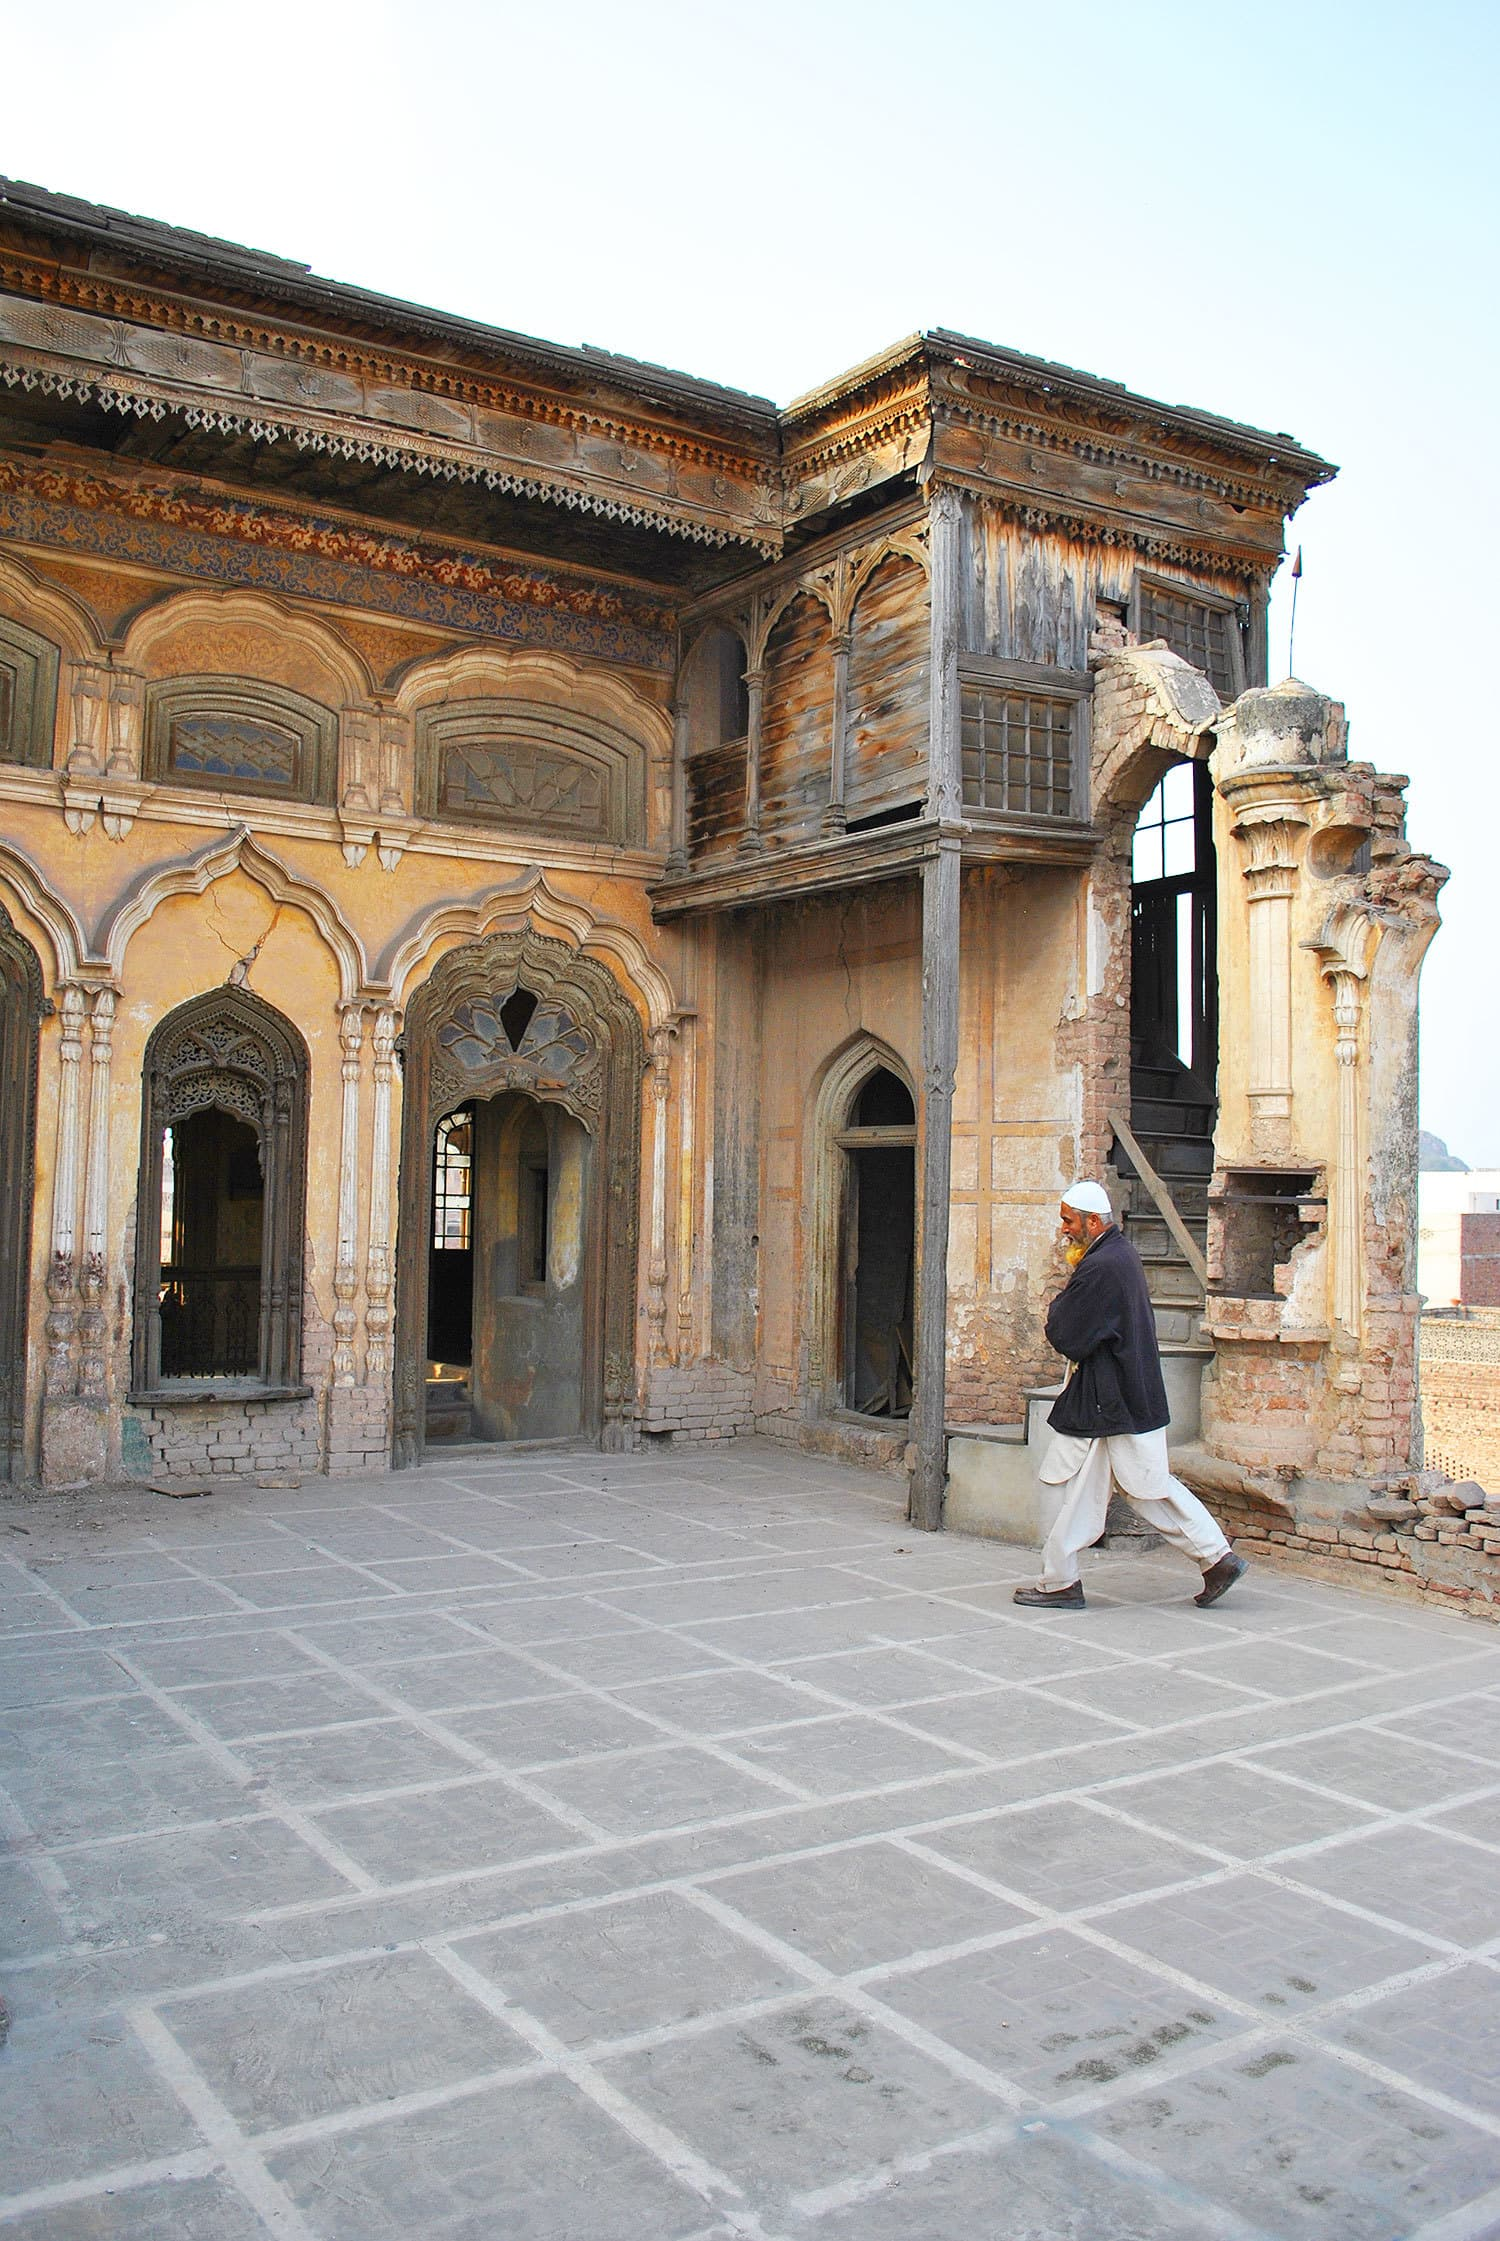 Mushtaq Ahmad — the librarian, guide, curator, historian and caretaker of the two graves inside the palace.